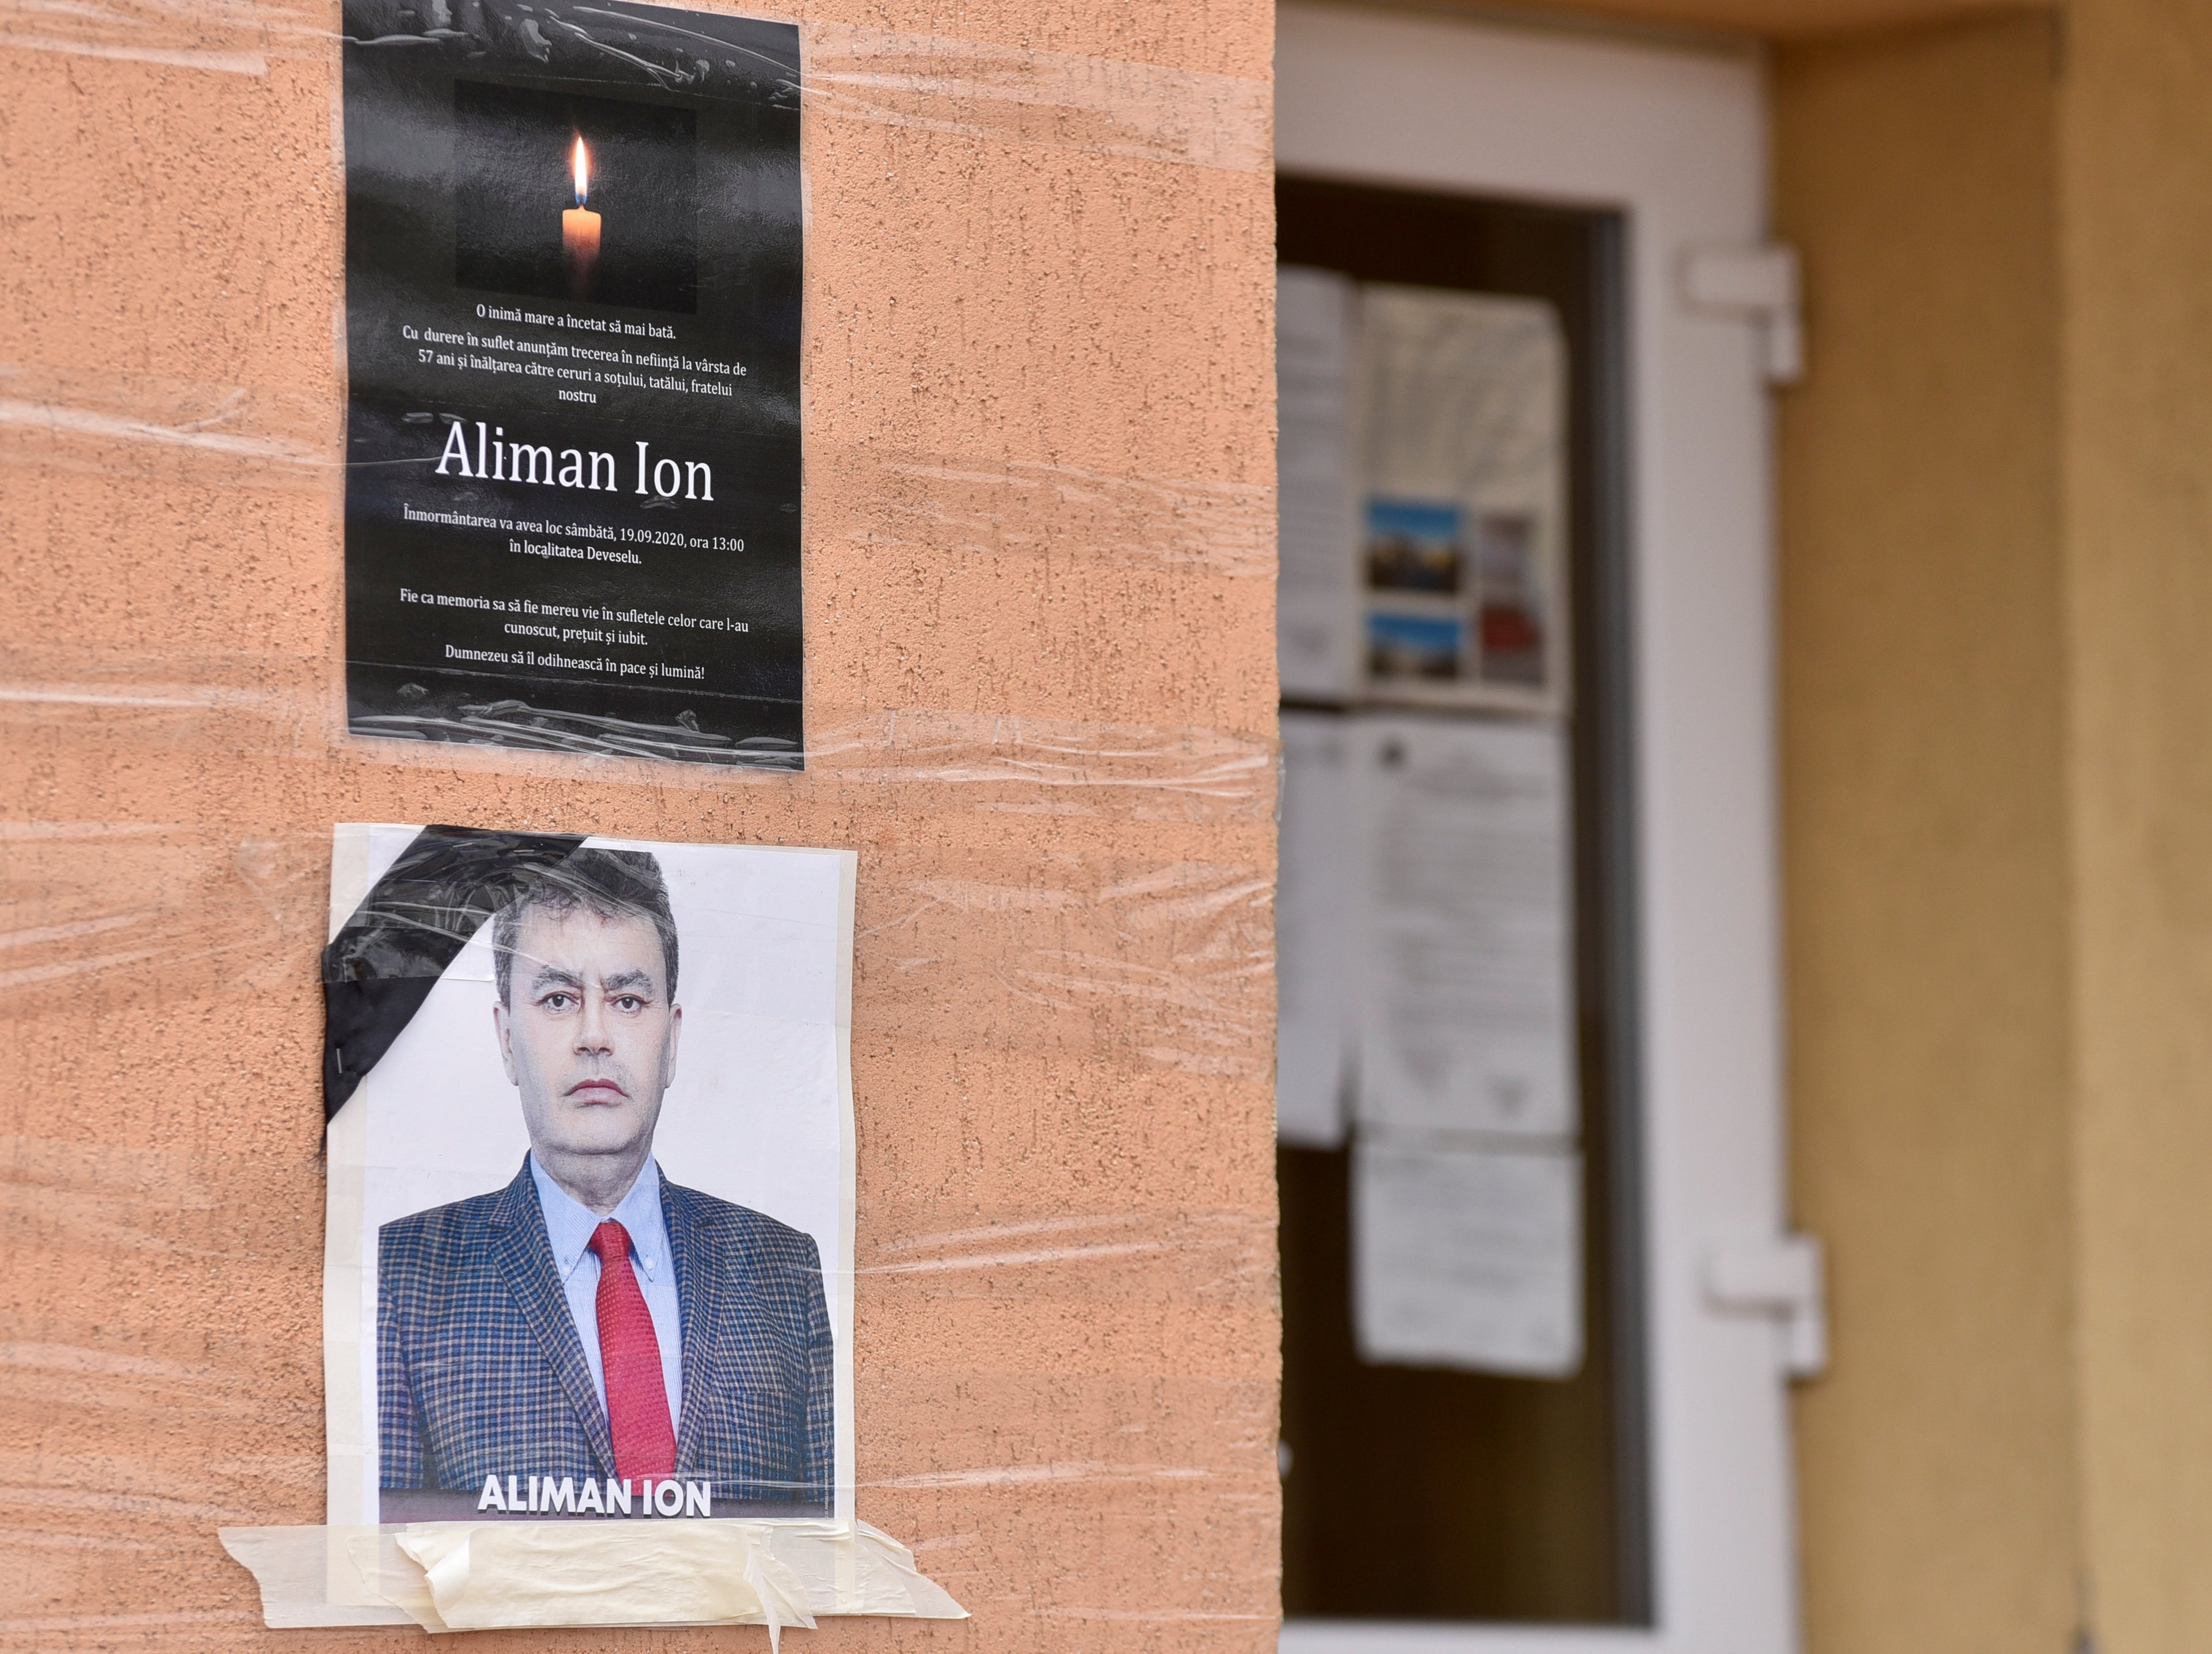 Romanian village re-elects dead mayor in landslide victory | The Independent